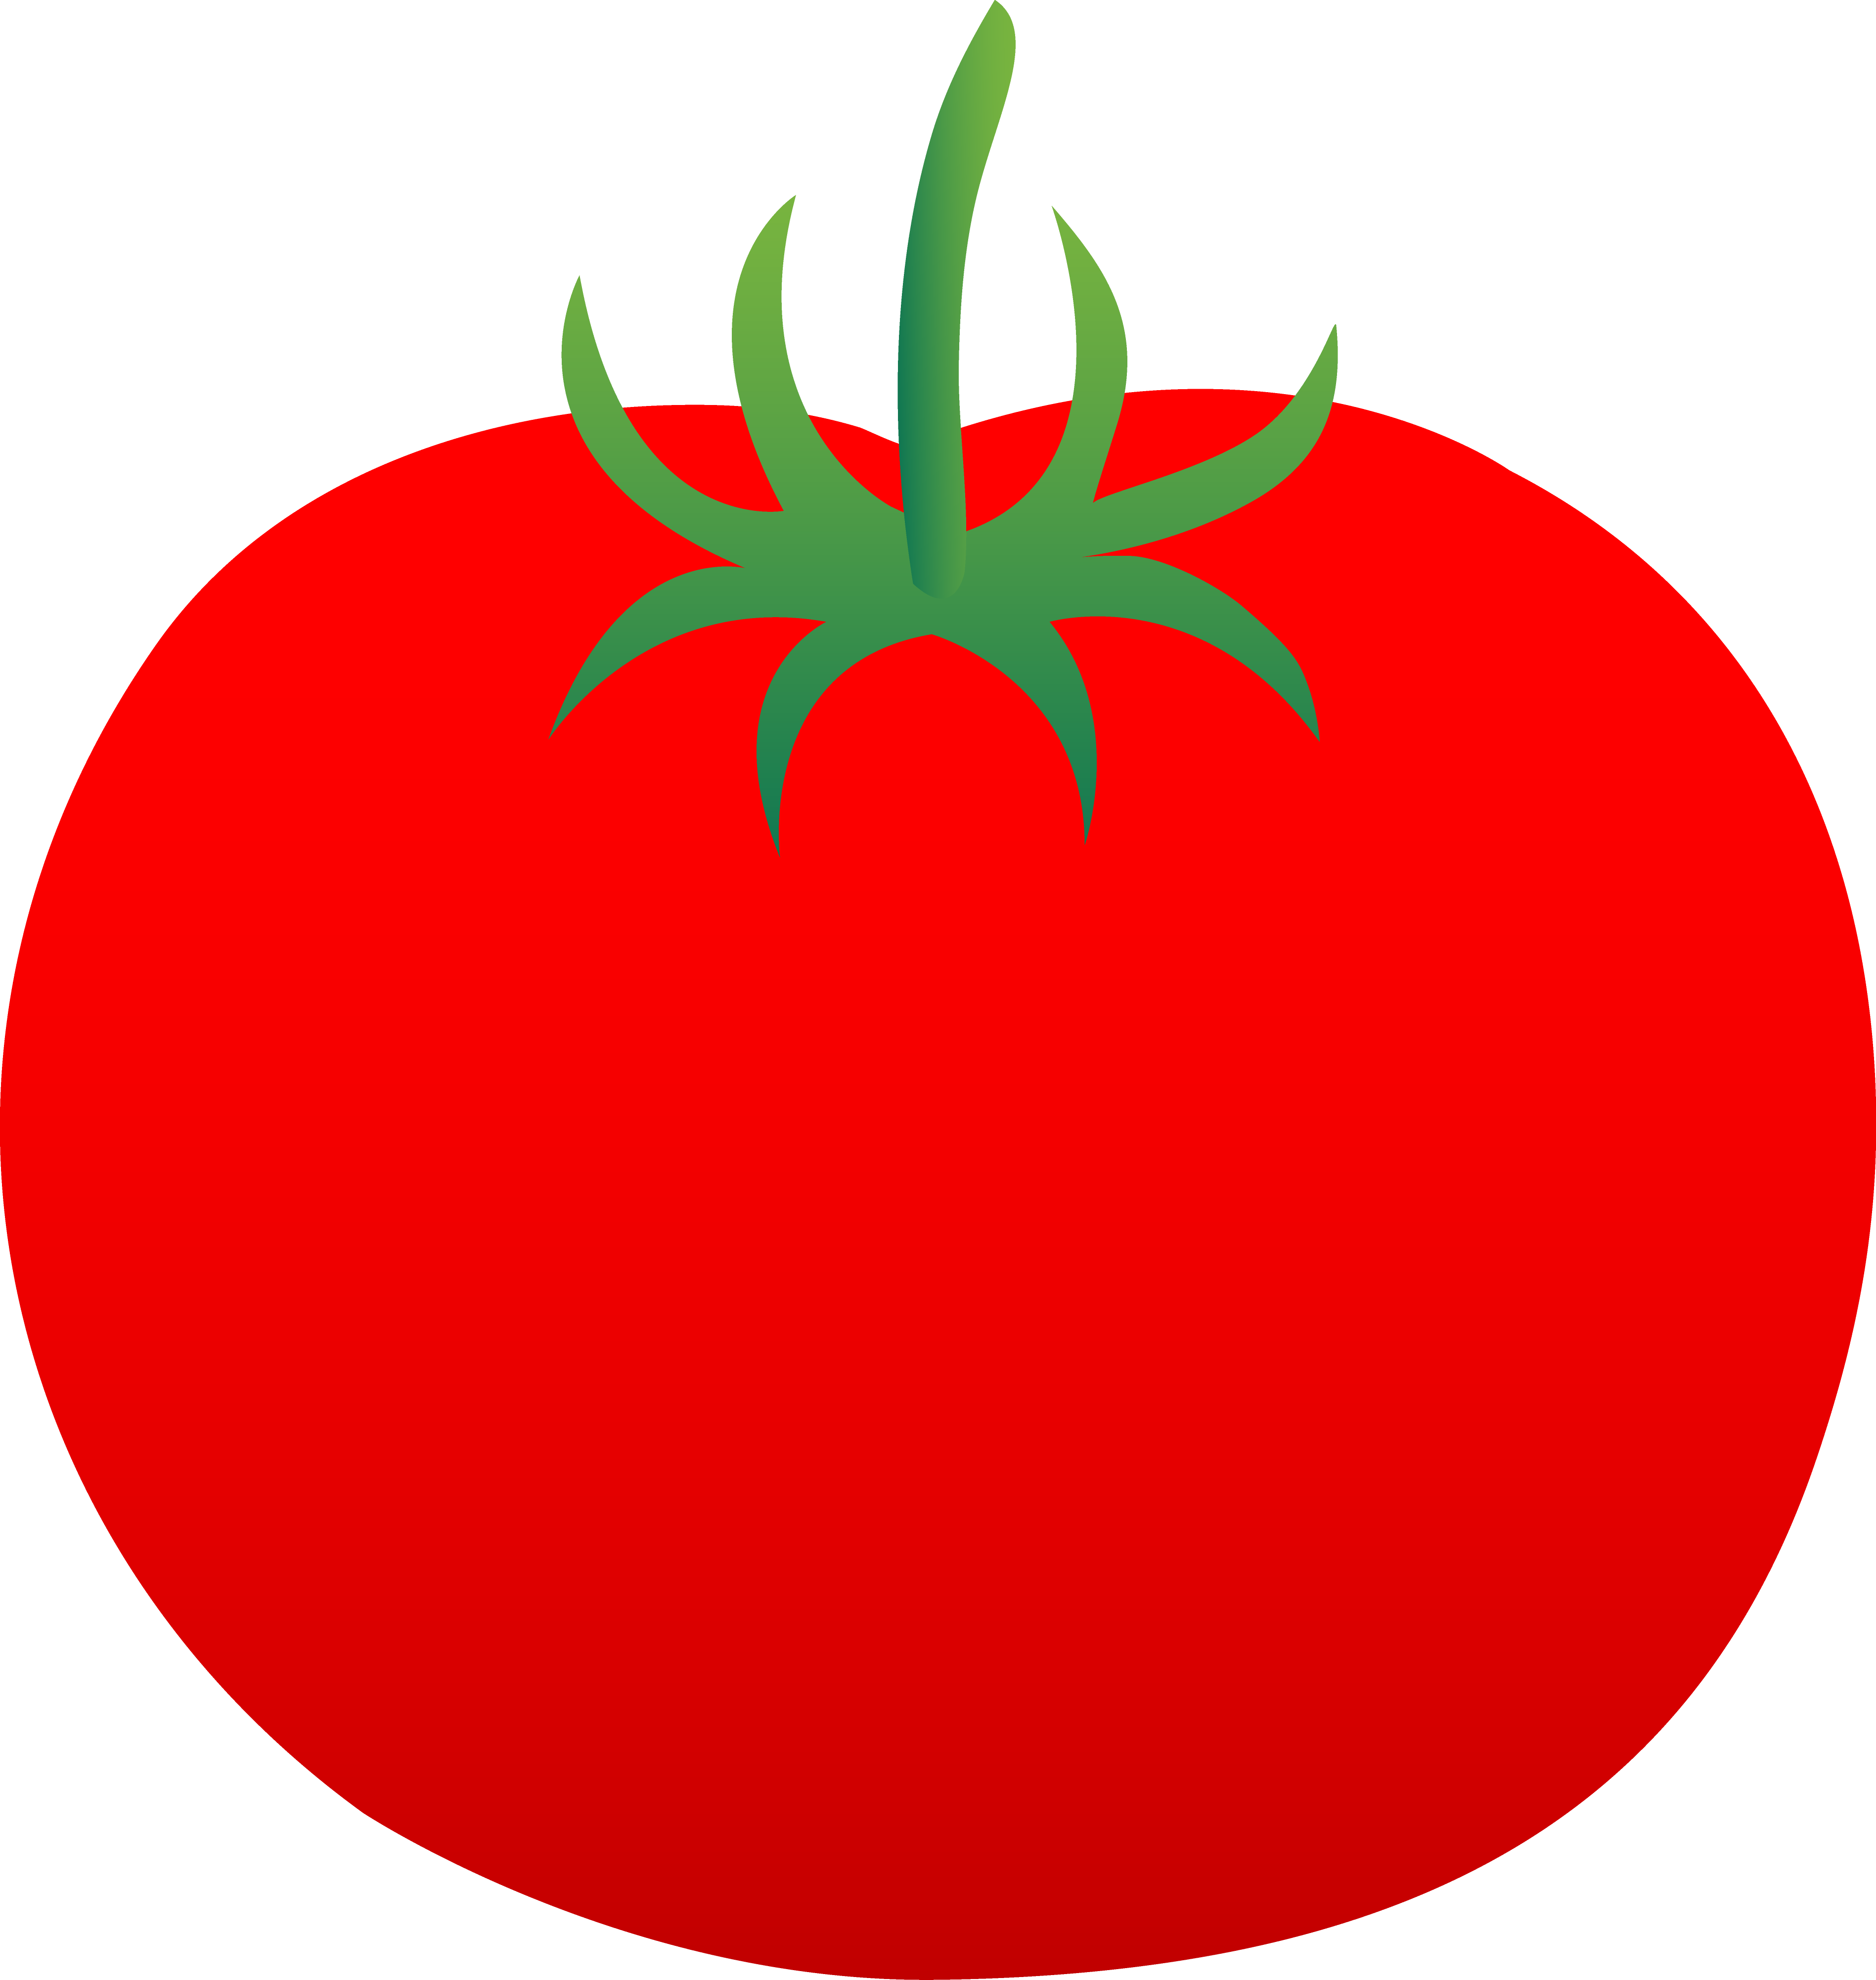 Whole Ripe Red Tomato.